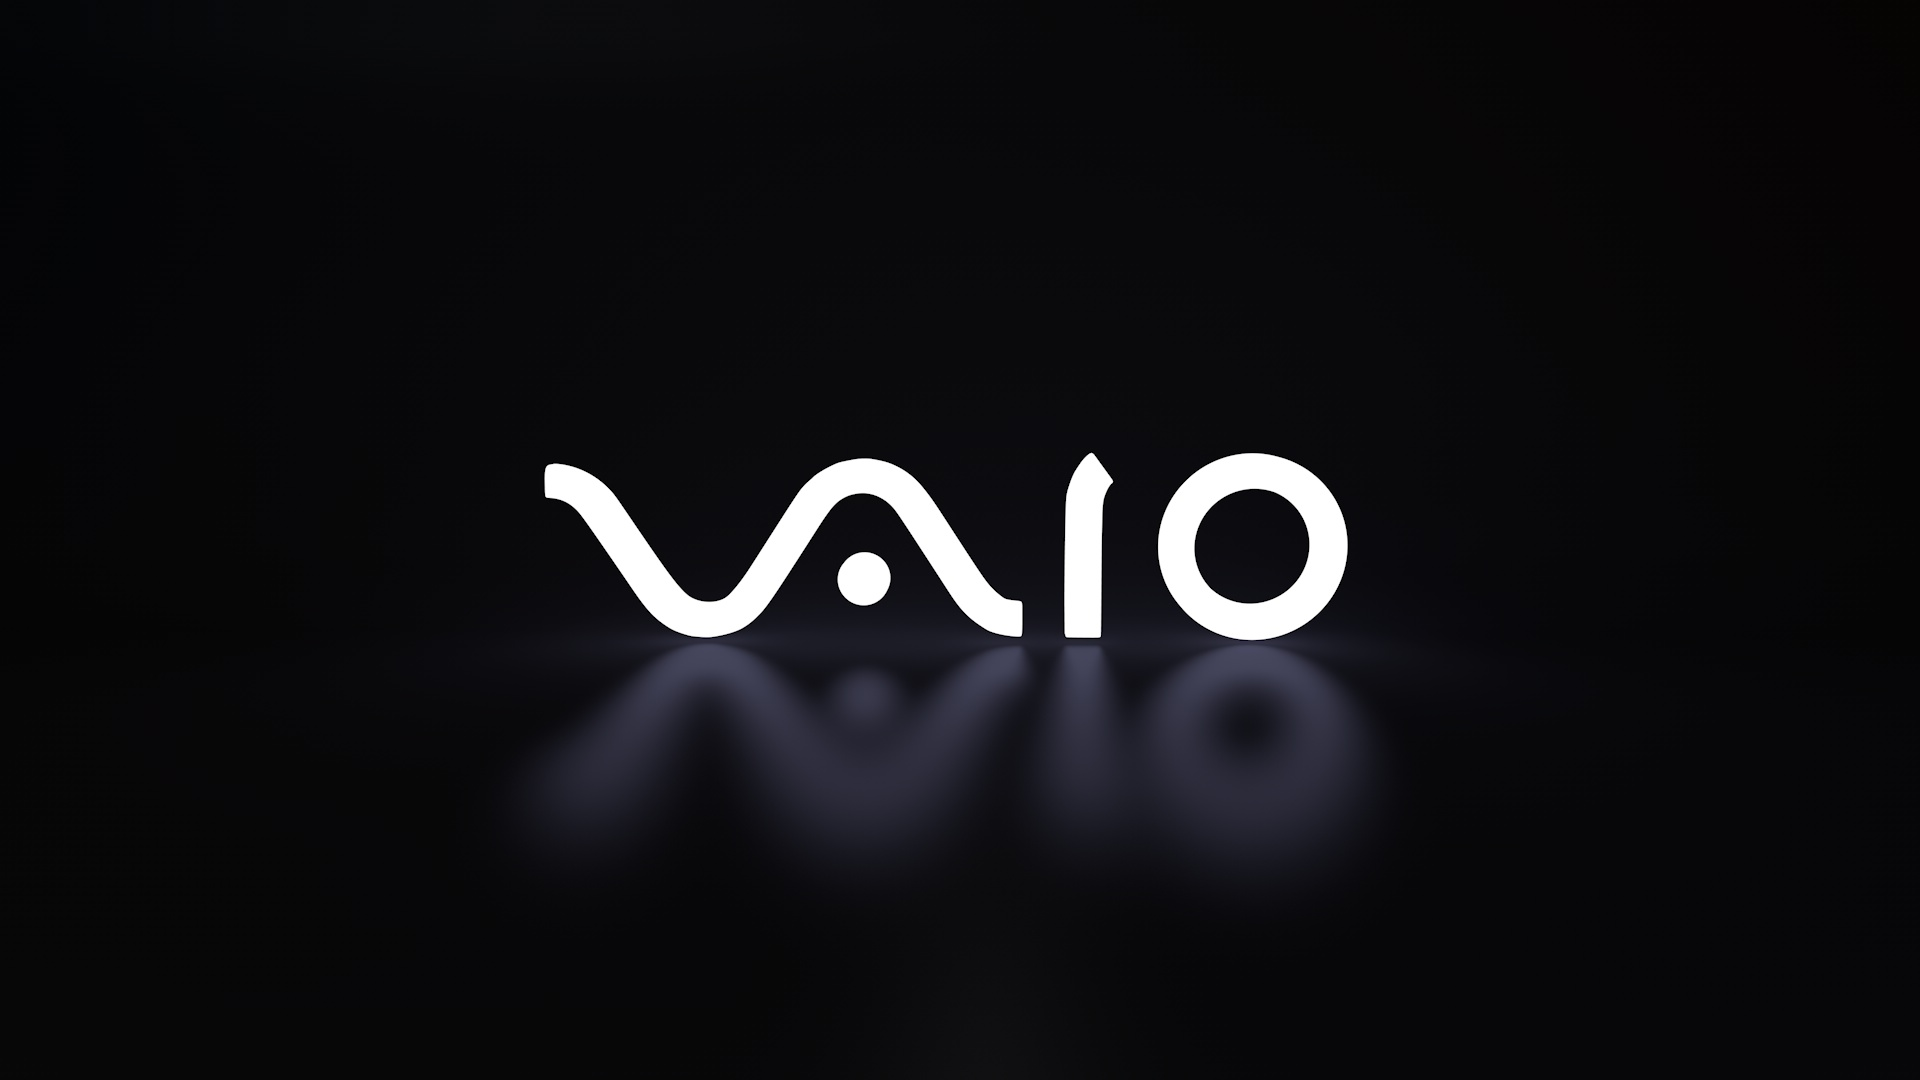 HD Sony Vaio Wallpapers amp Vaio Backgrounds For Download 1920x1080